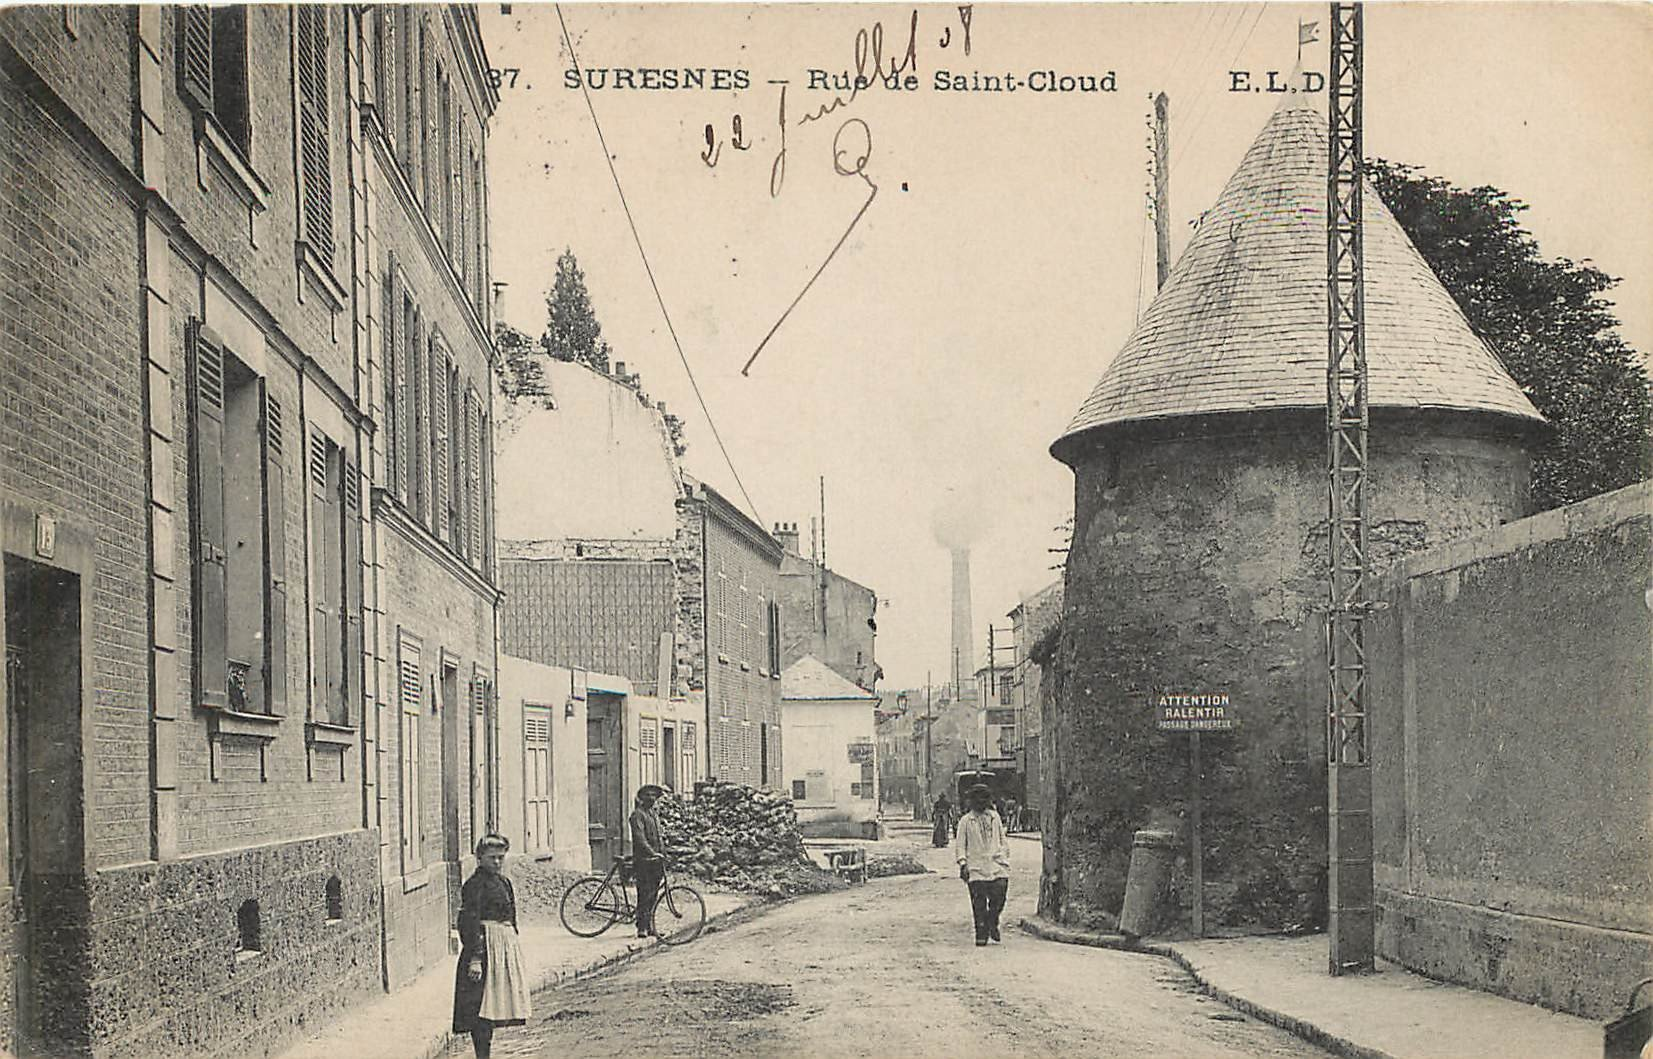 92 SURESNES. Rue de Saint-Cloud 1908